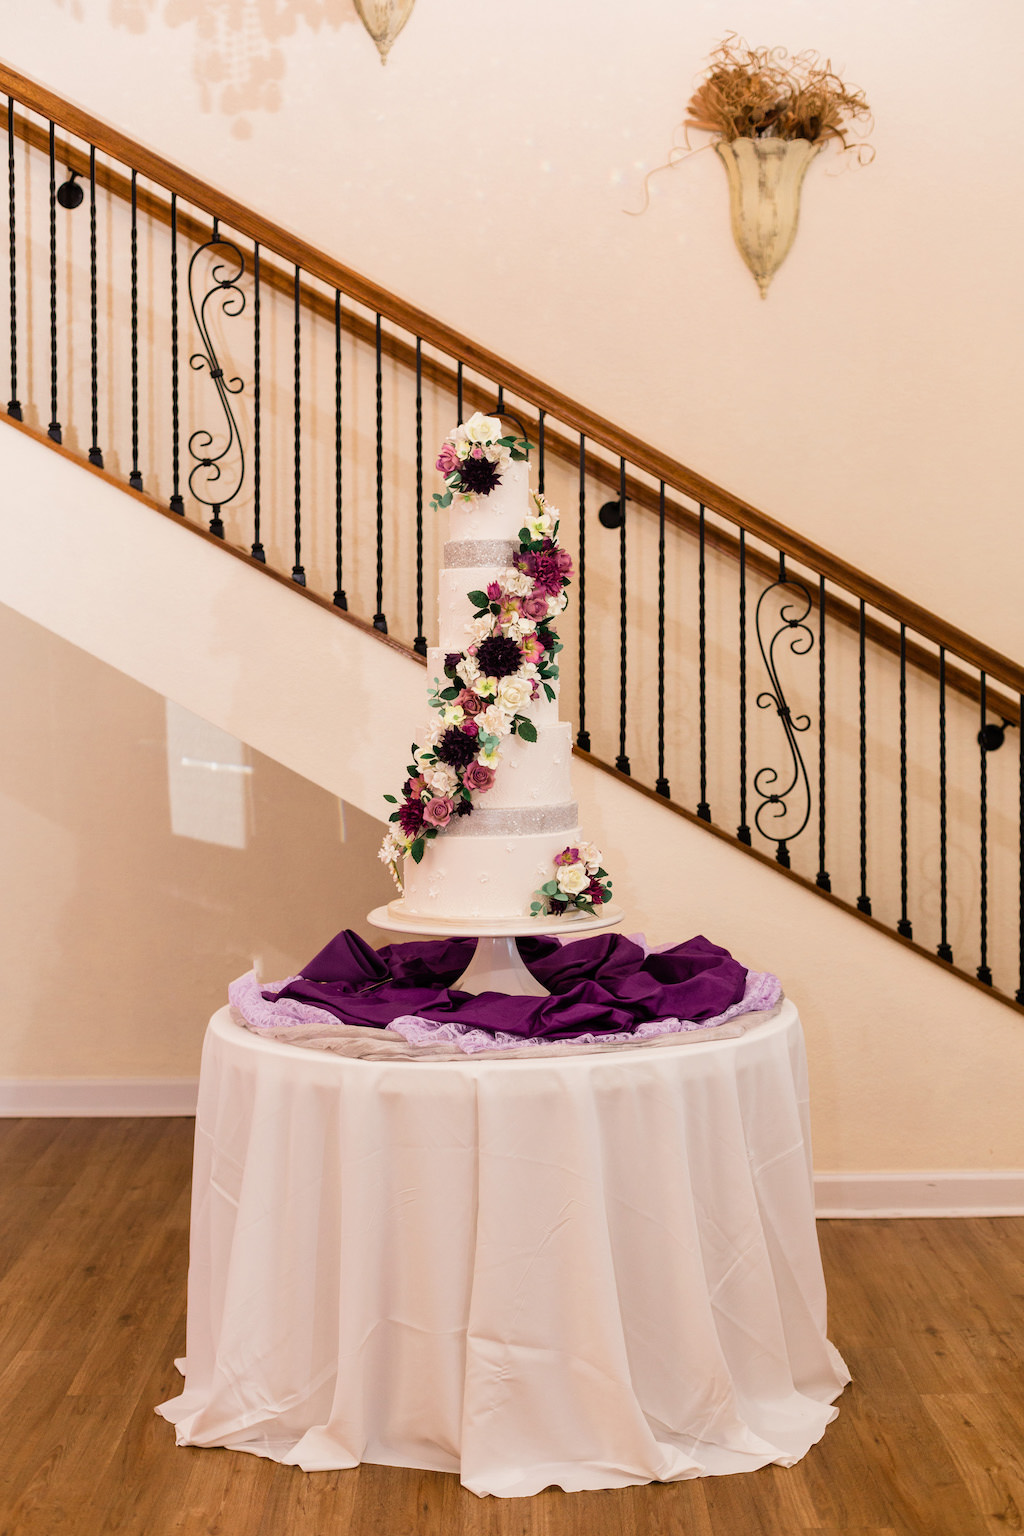 Elegant, Five Tier White Wedding Cake with Lush Edible Floral Accents, White, Purple, Pink, Ivory Flowers with Silver Accents | Modern Tampa Bay Waterfront Wedding Venue Beso Del Sol